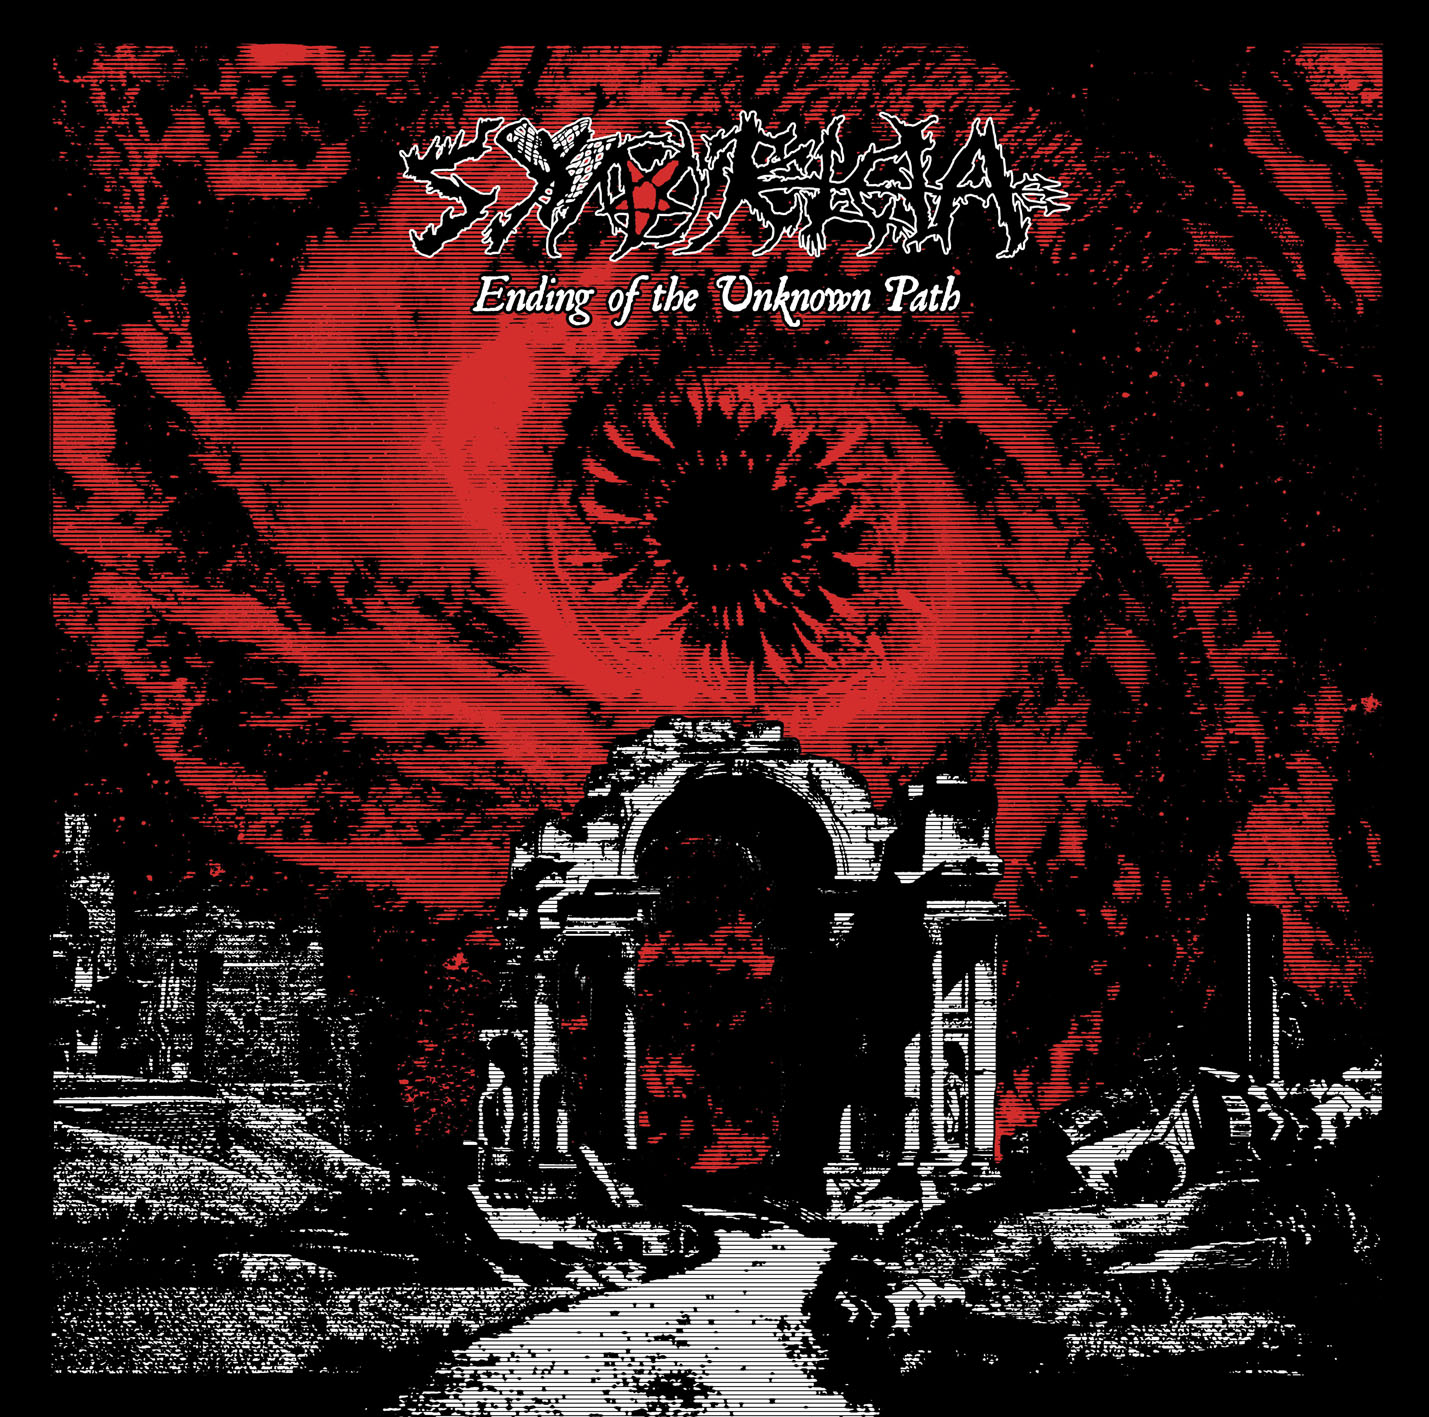 Synteleia - Ending of the Unknown Path Review | Angry Metal Guy